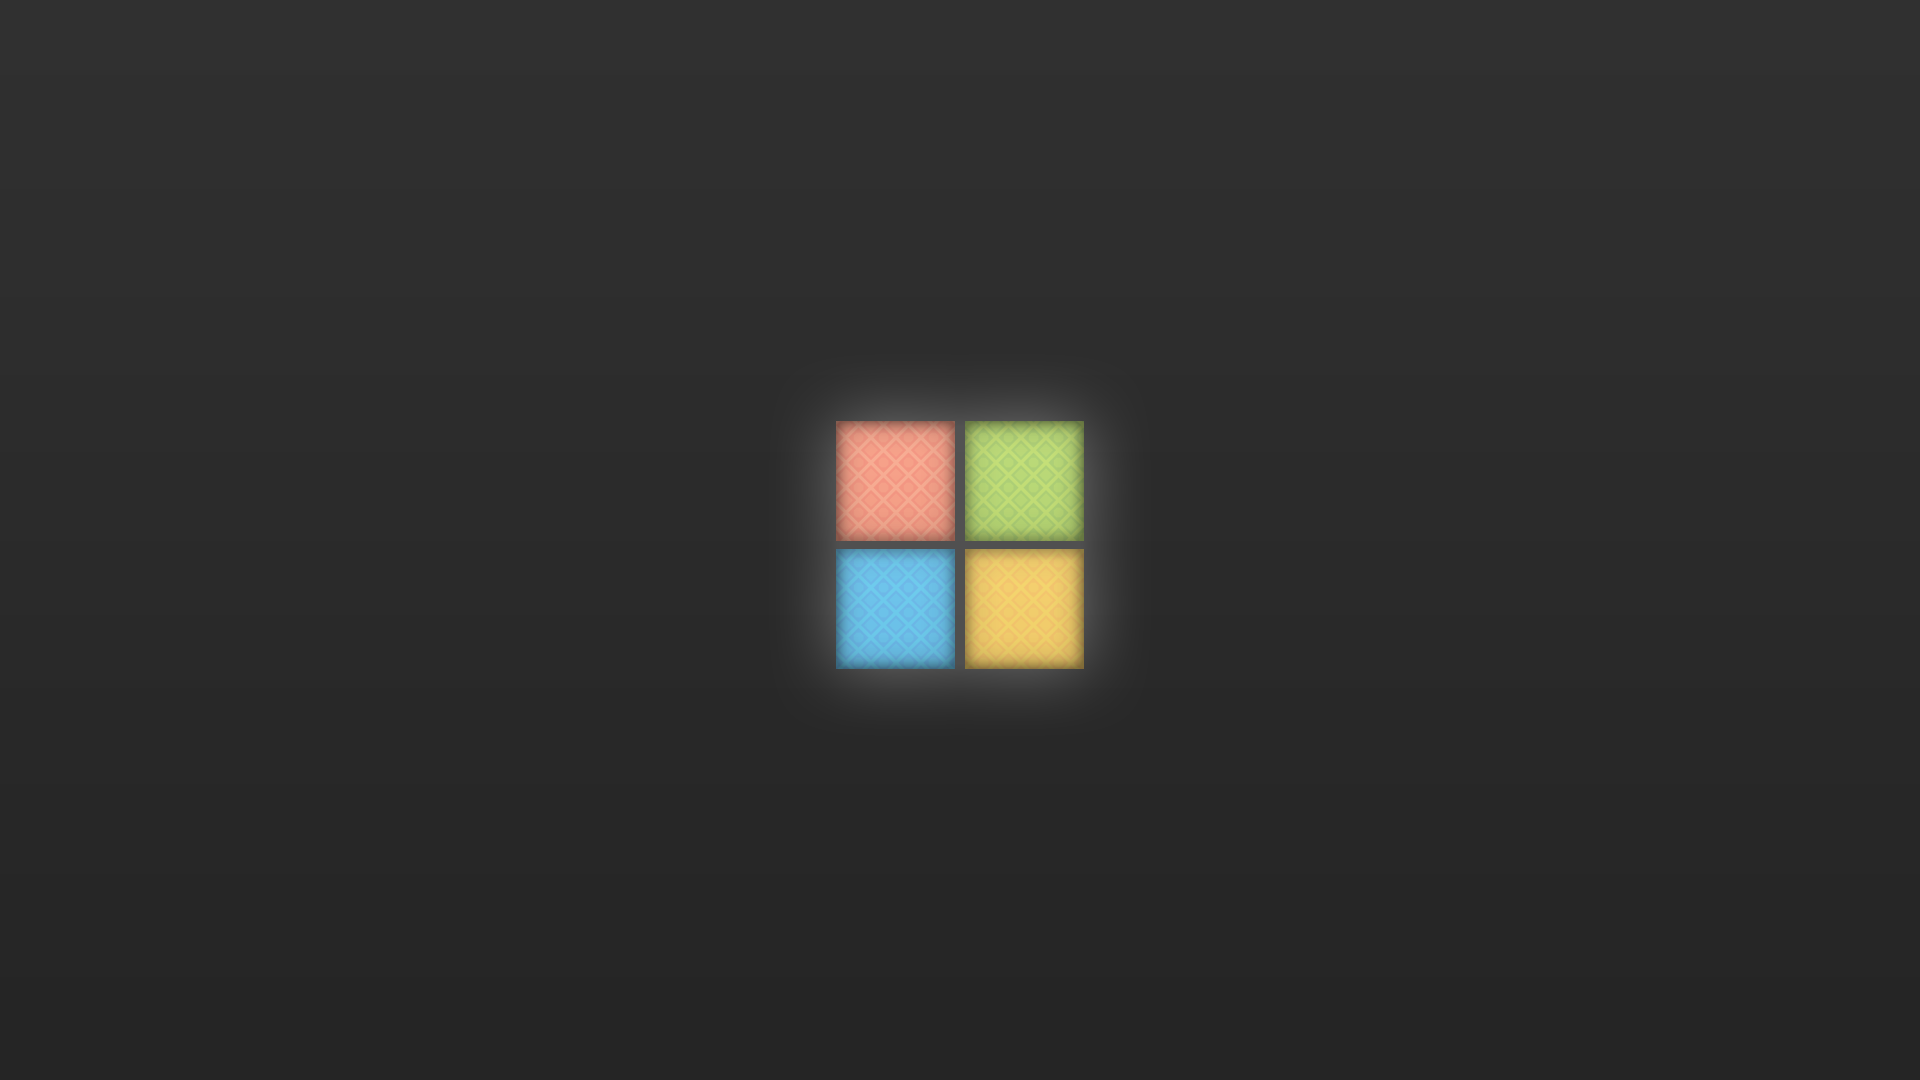 New Microsoft Logo wallpaper - 894042